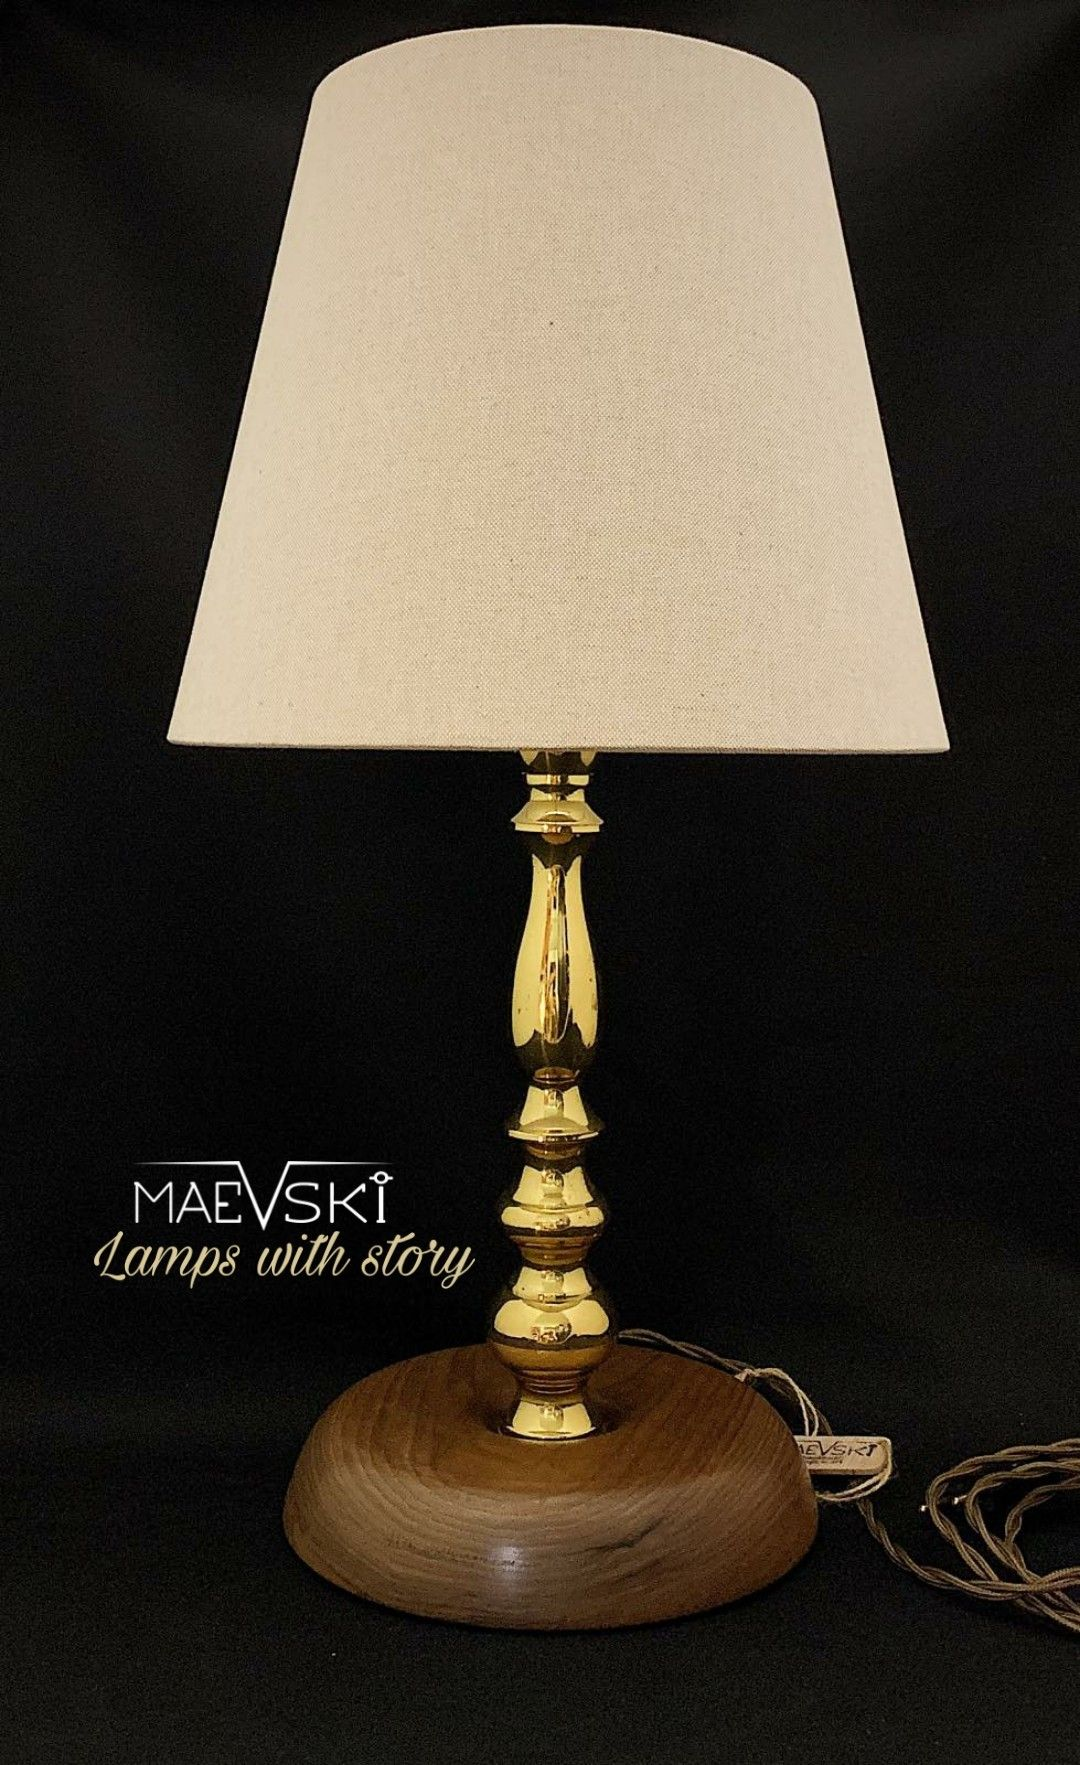 Schlafzimmer Lampe Petrol Designer Lamp, Table Lamp, Brass Lamp, Home Decor Accent | Lampe, Lampendesign